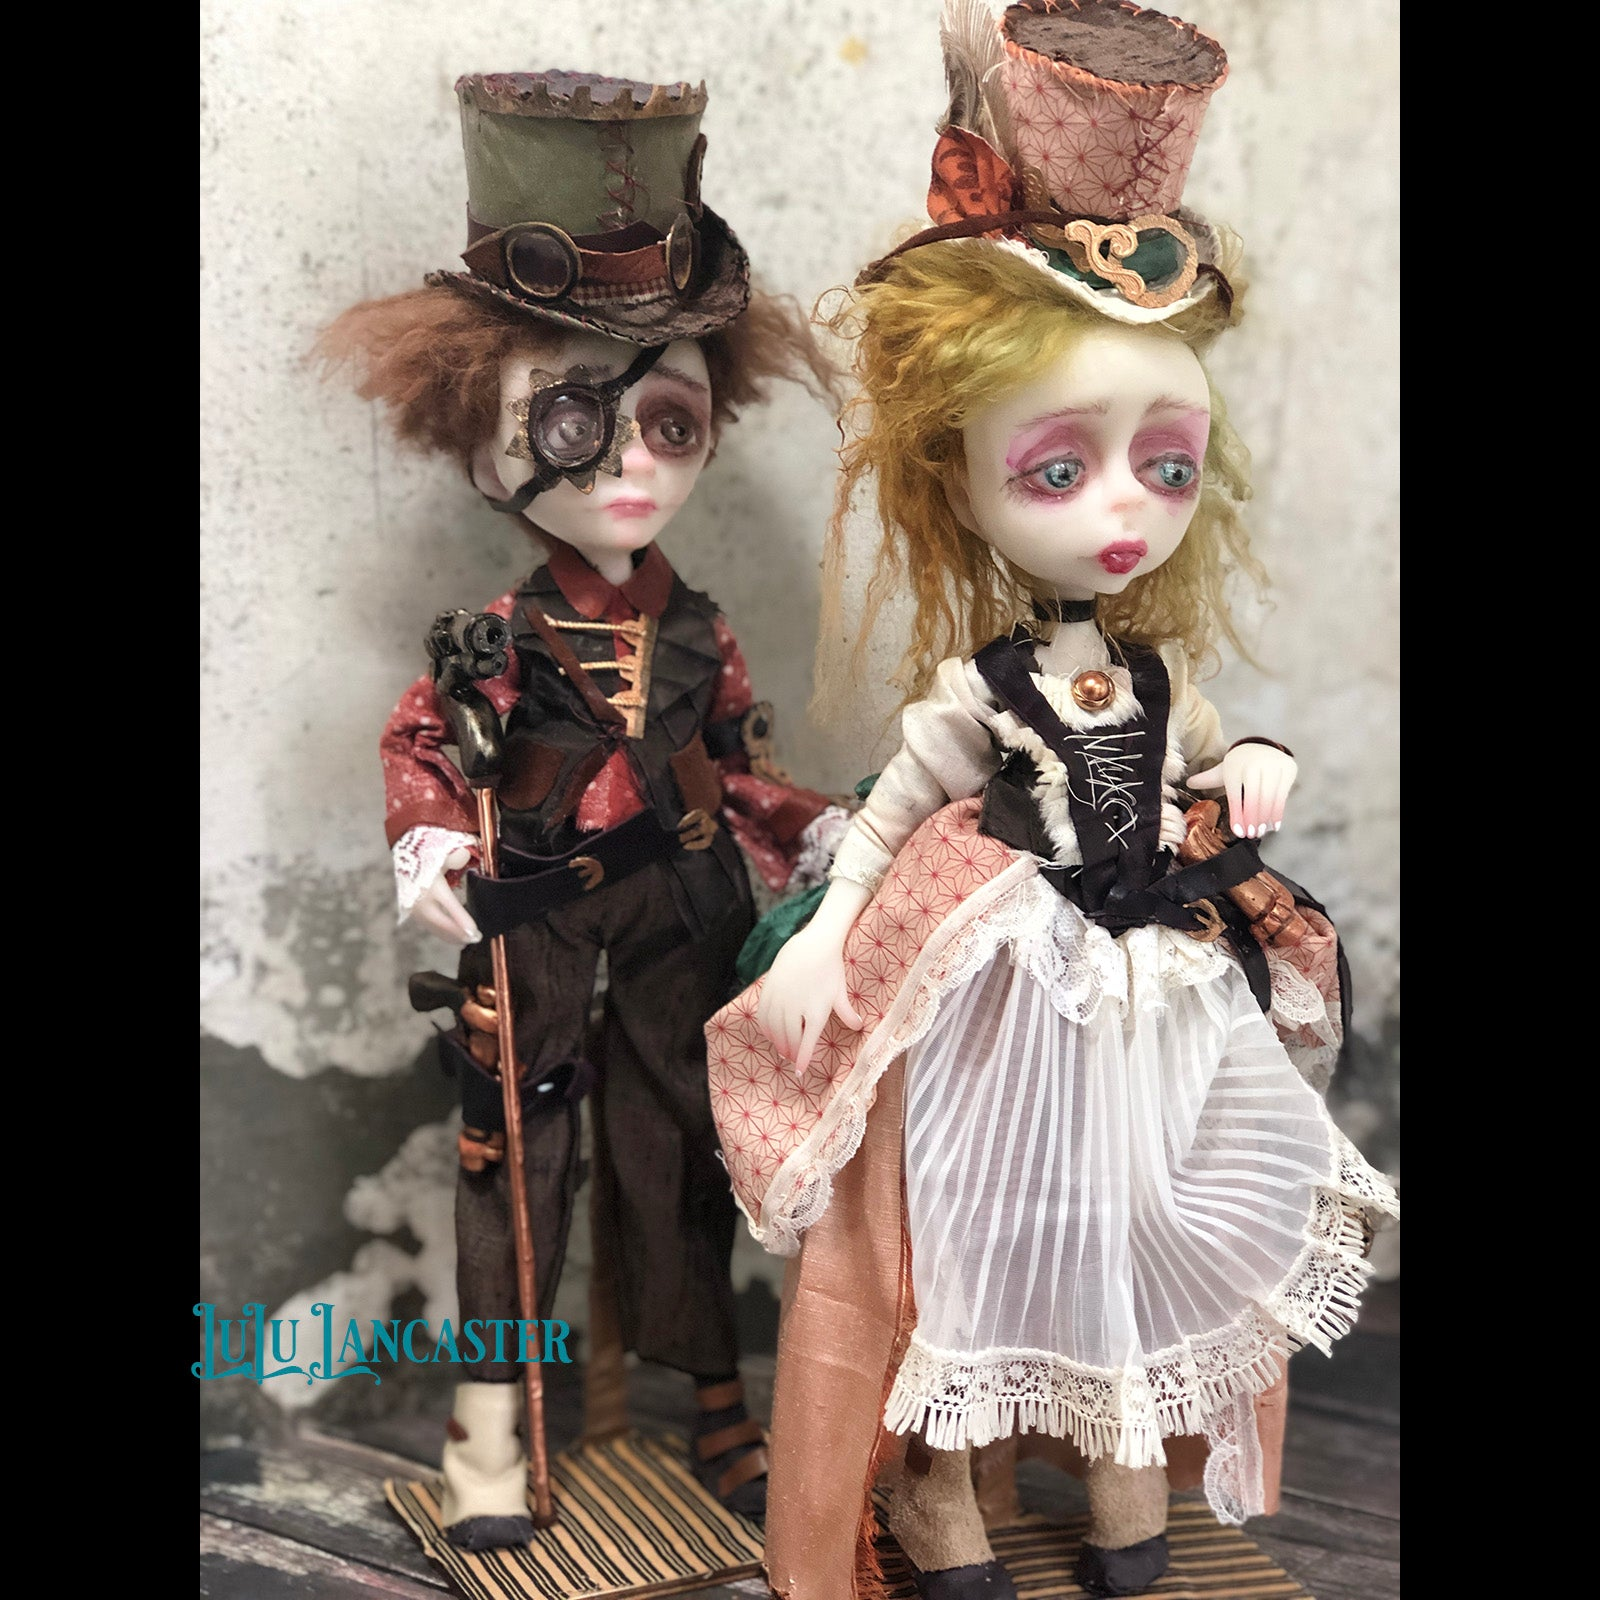 Bonnie and Clyde Western Victorian Steampunk couple OOAK Art Dolls LuLu Lancaster